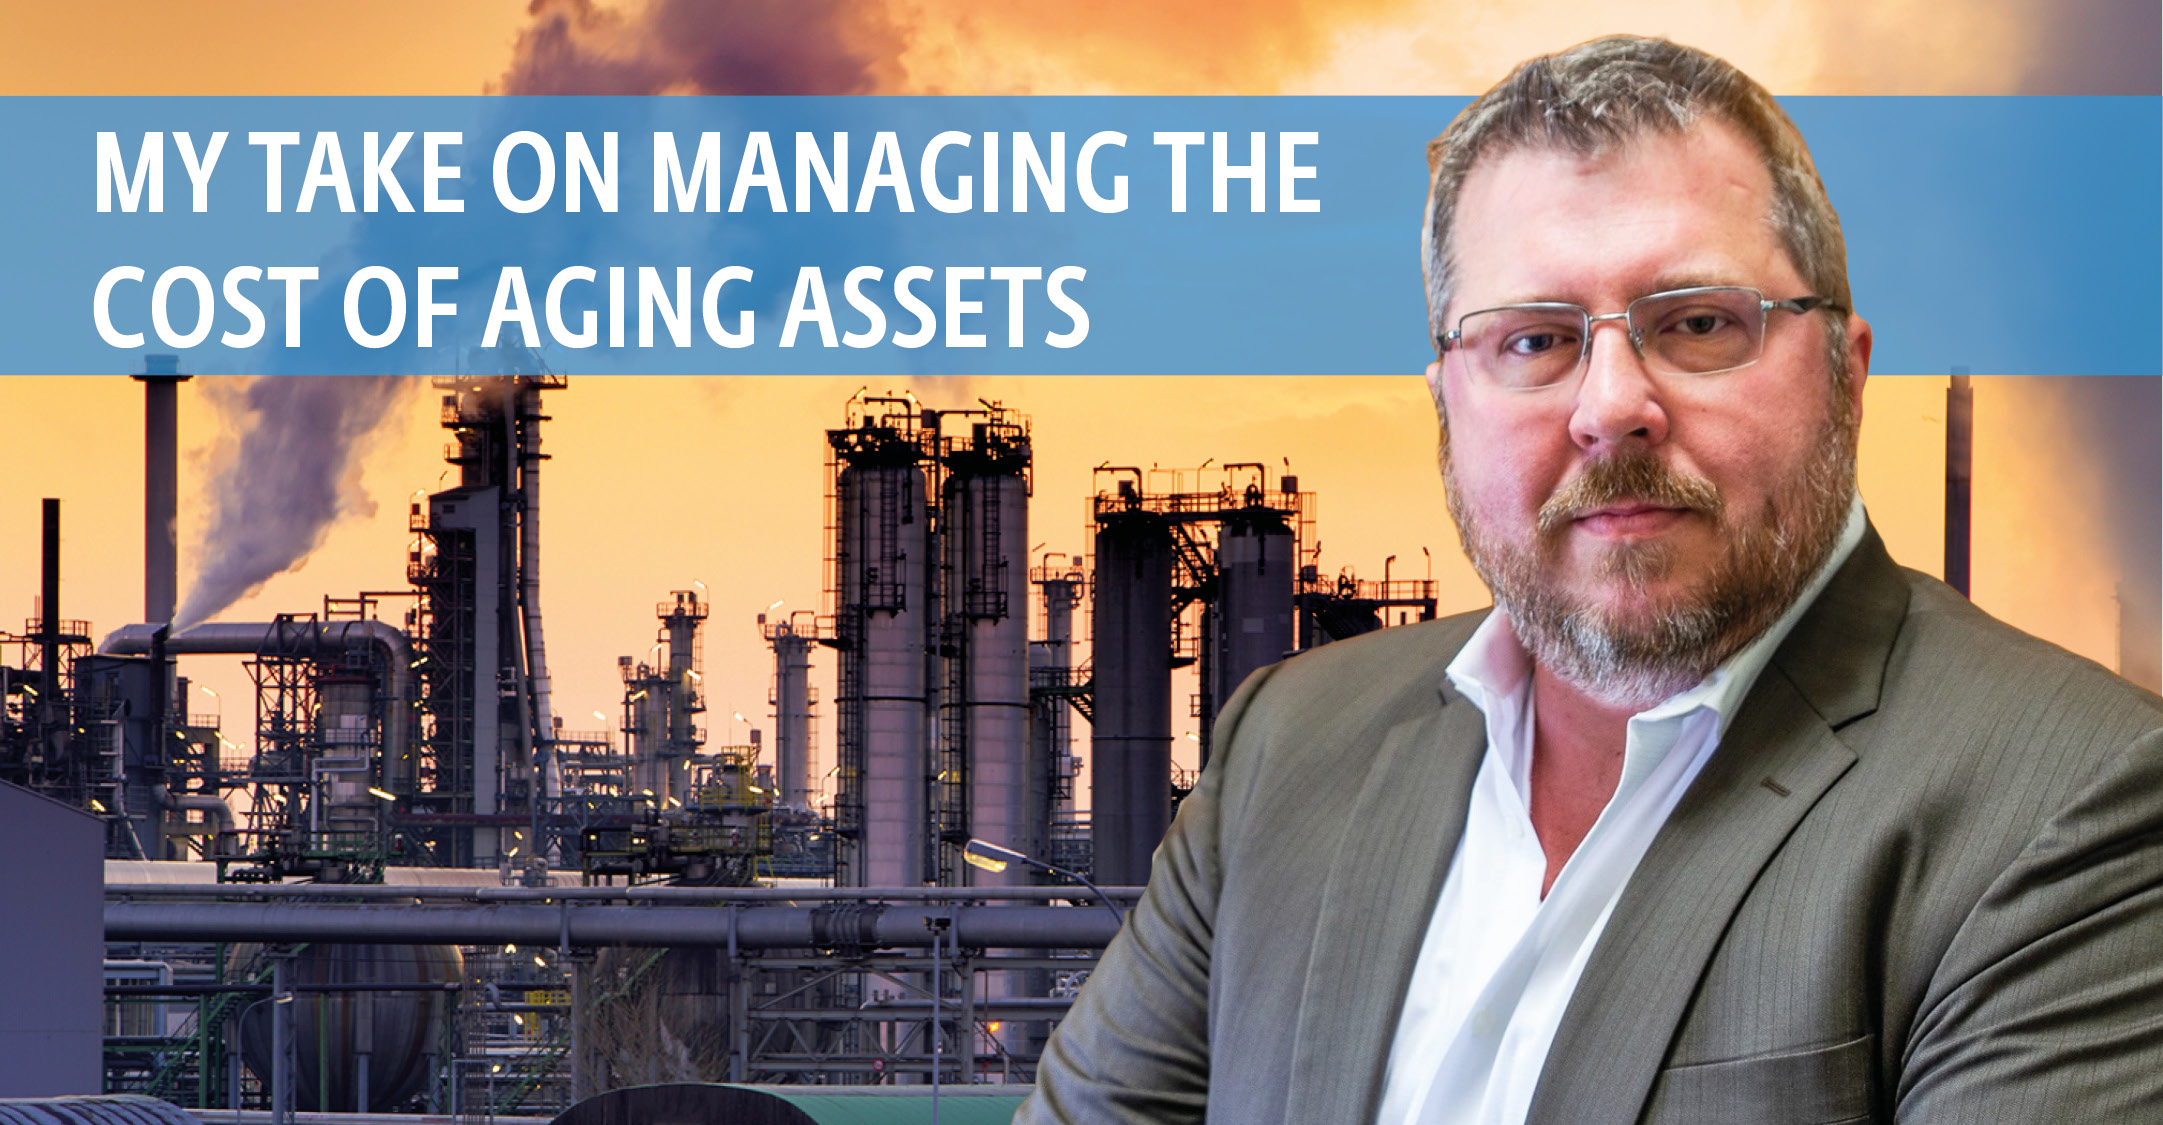 My Take on Managing the Cost of Aging Assets